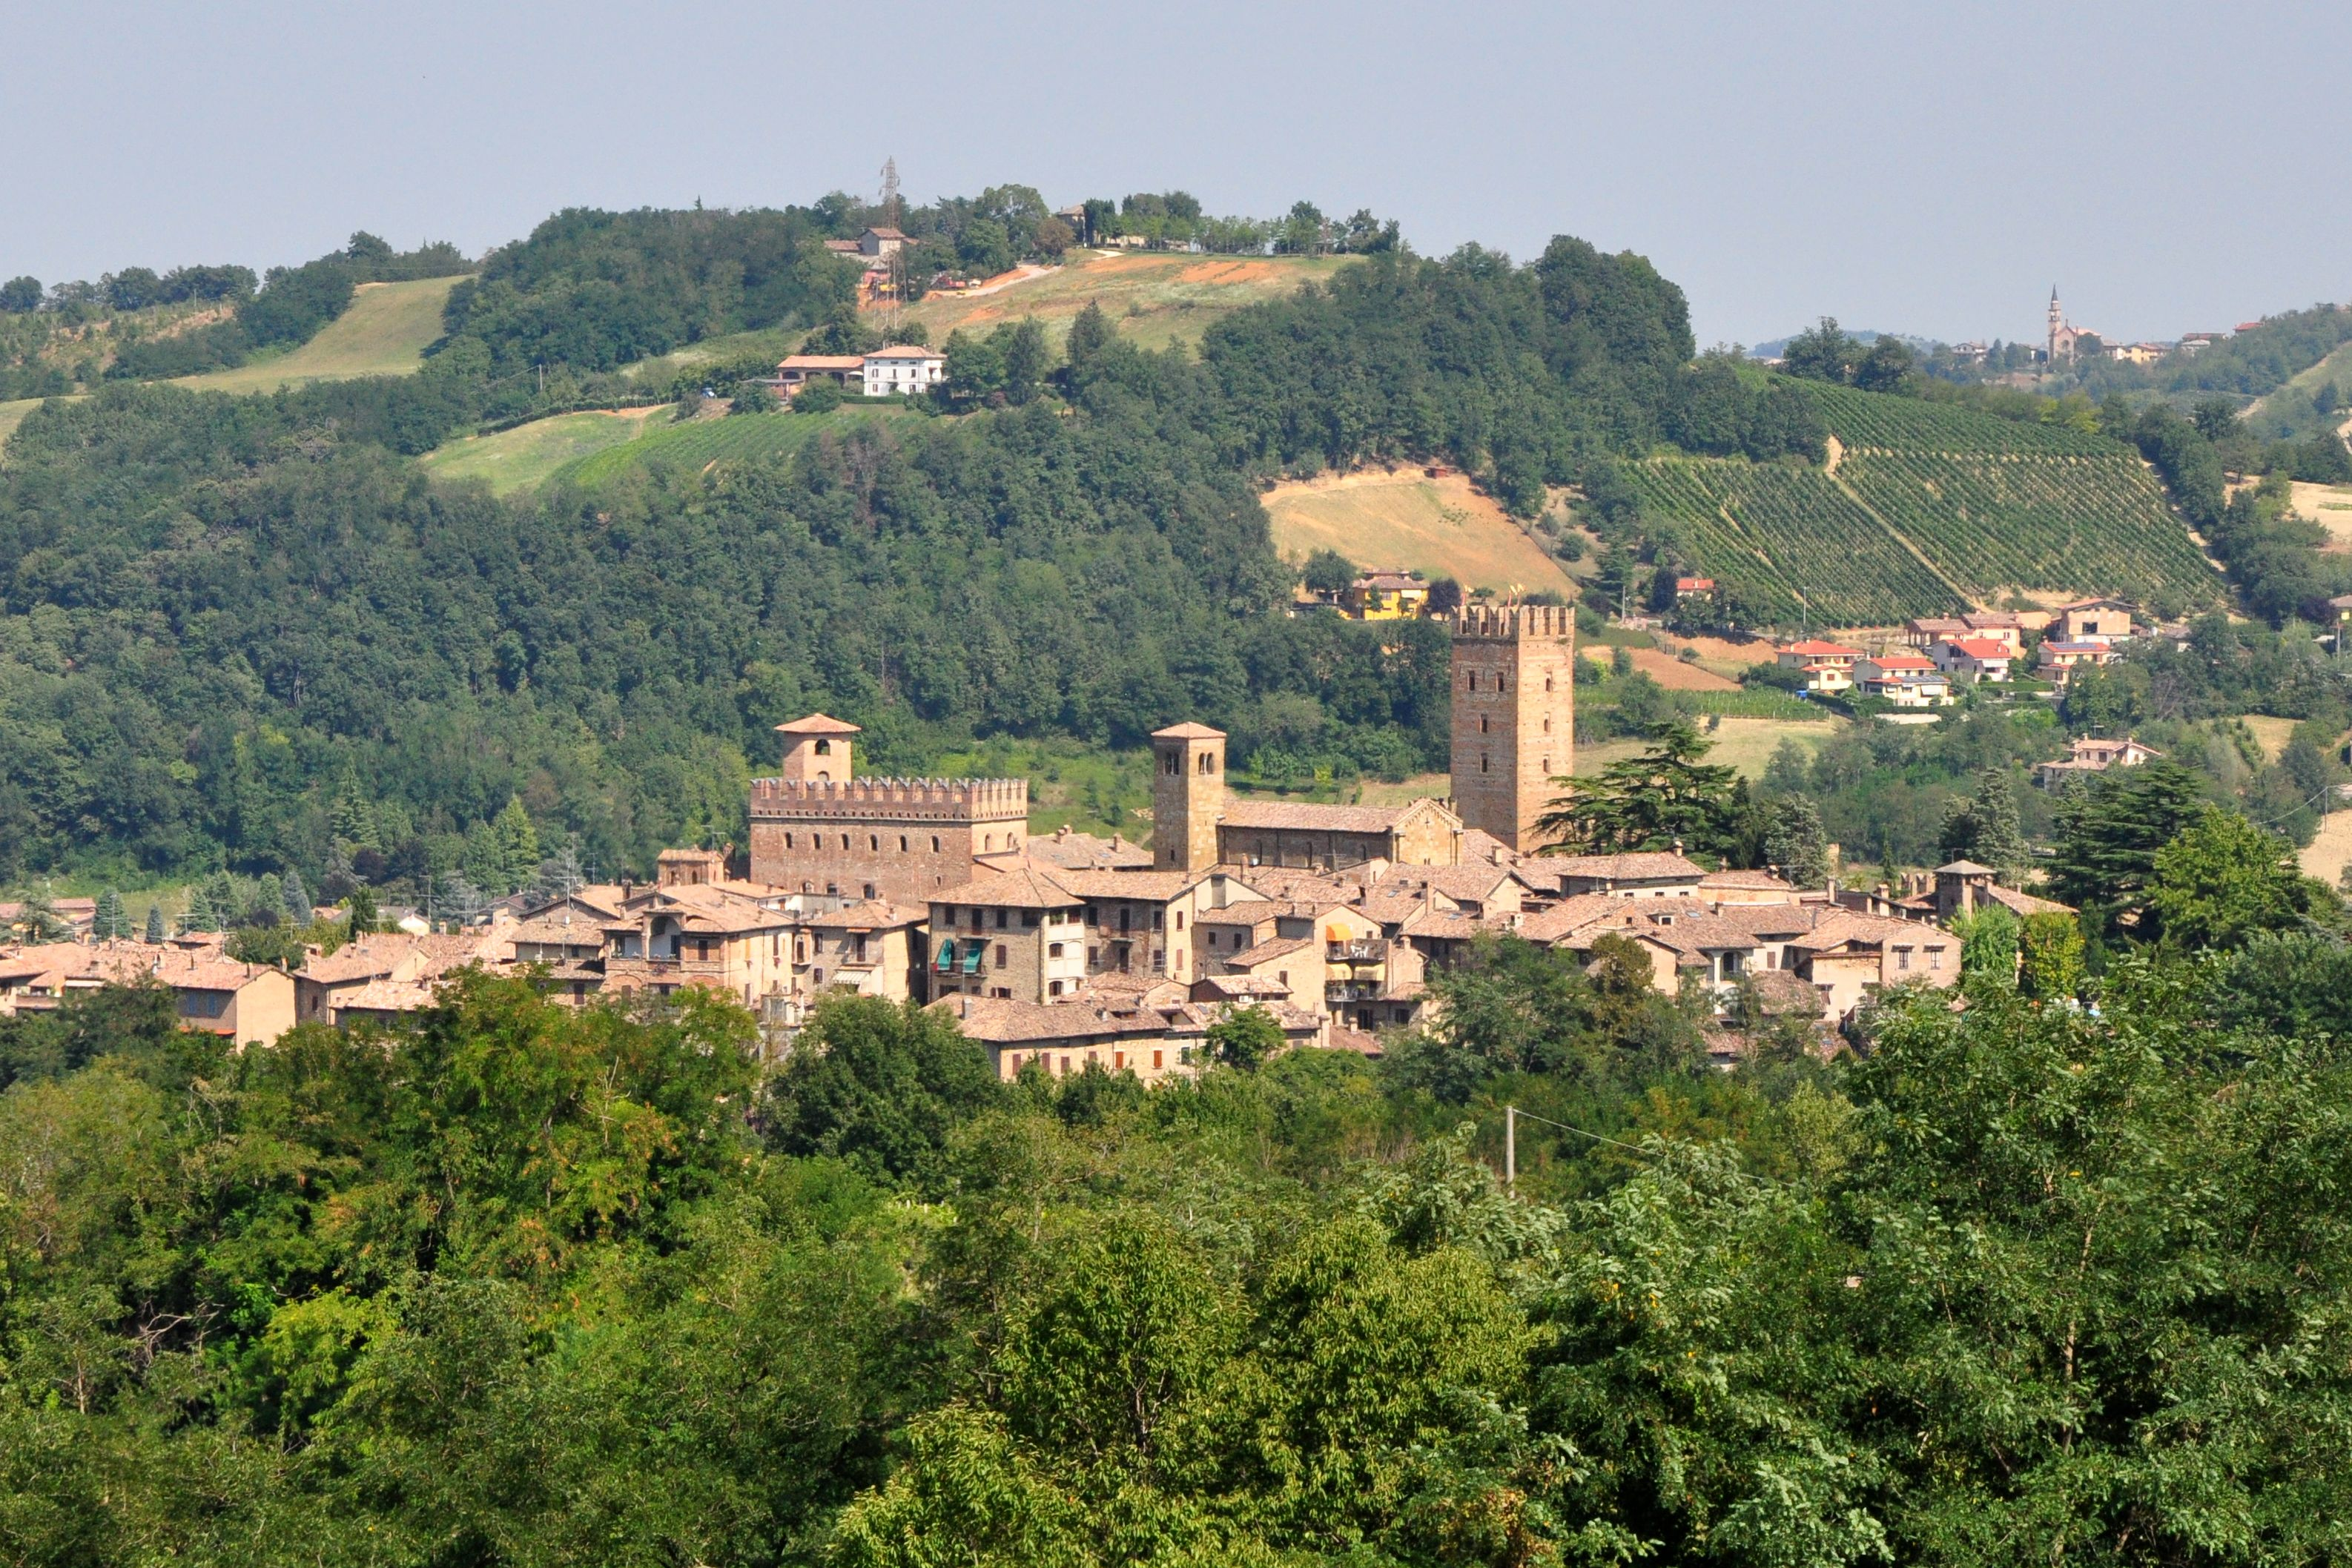 8 Things to Love About Emilia-Romagna  Walks of Italy Blog